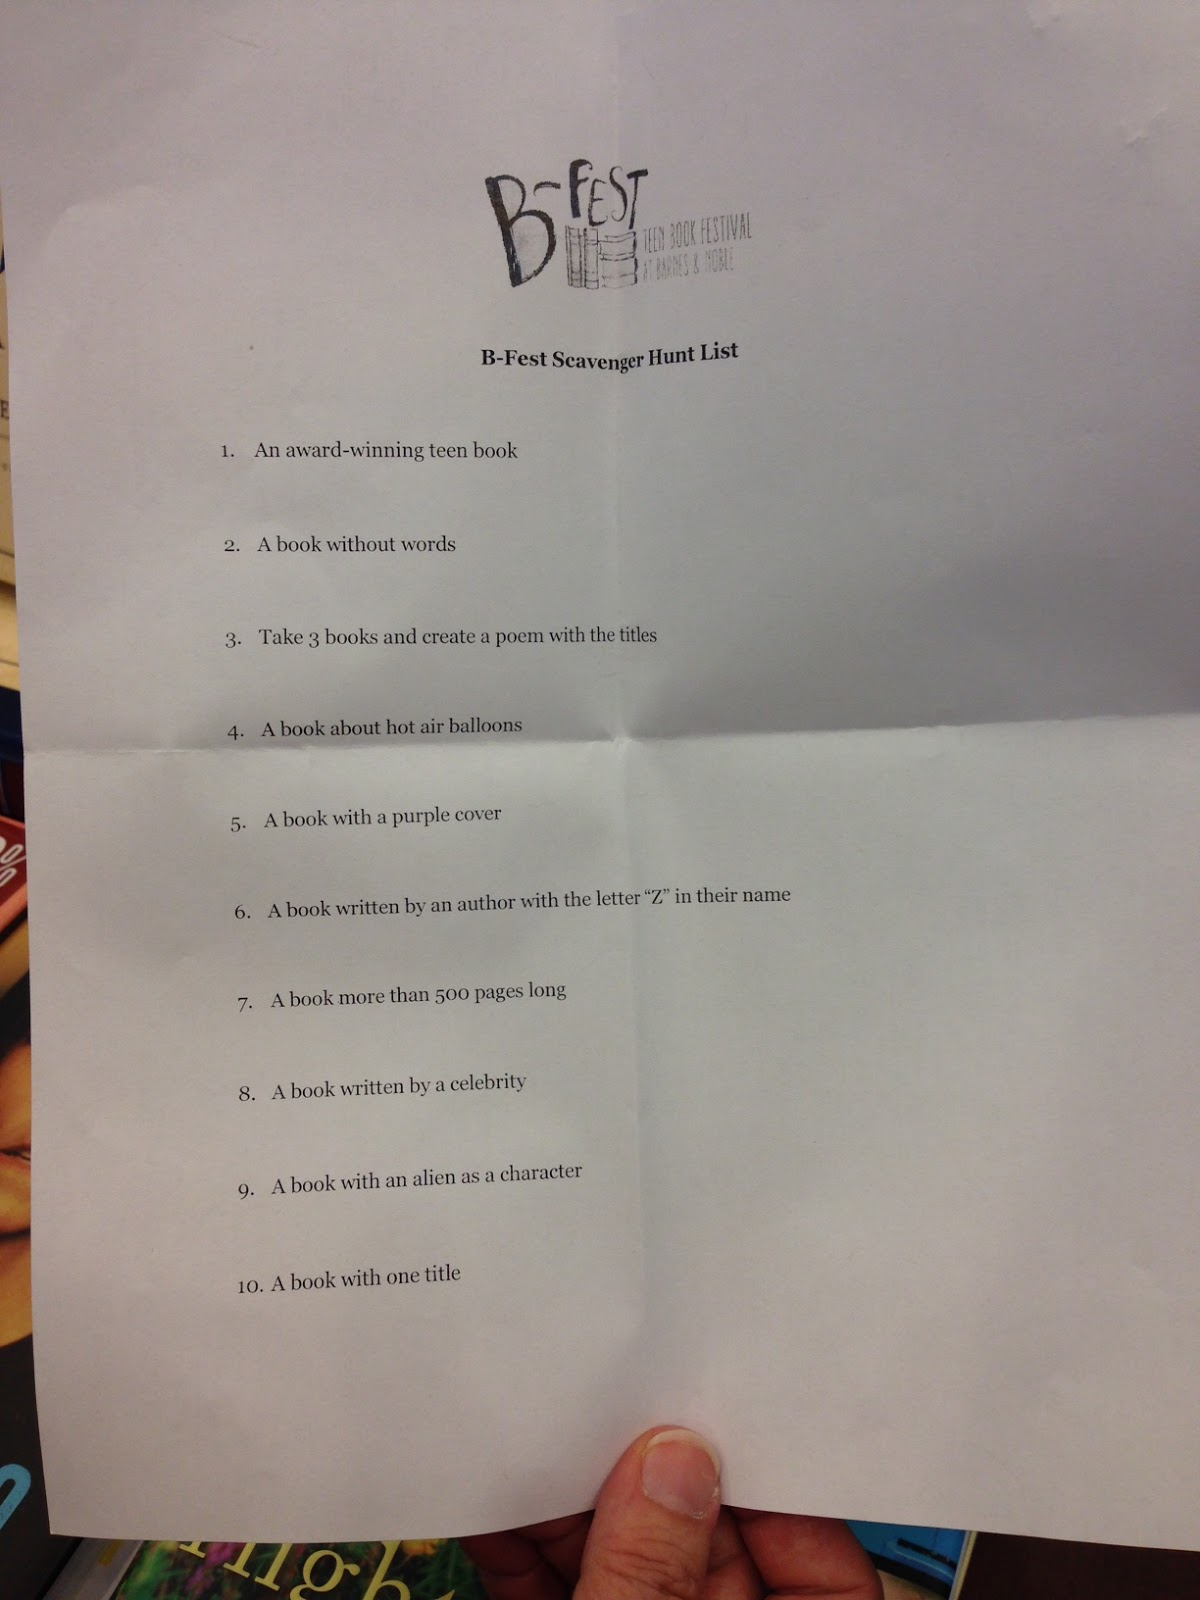 Speaking, Scavenger hunt lists for teens topic has